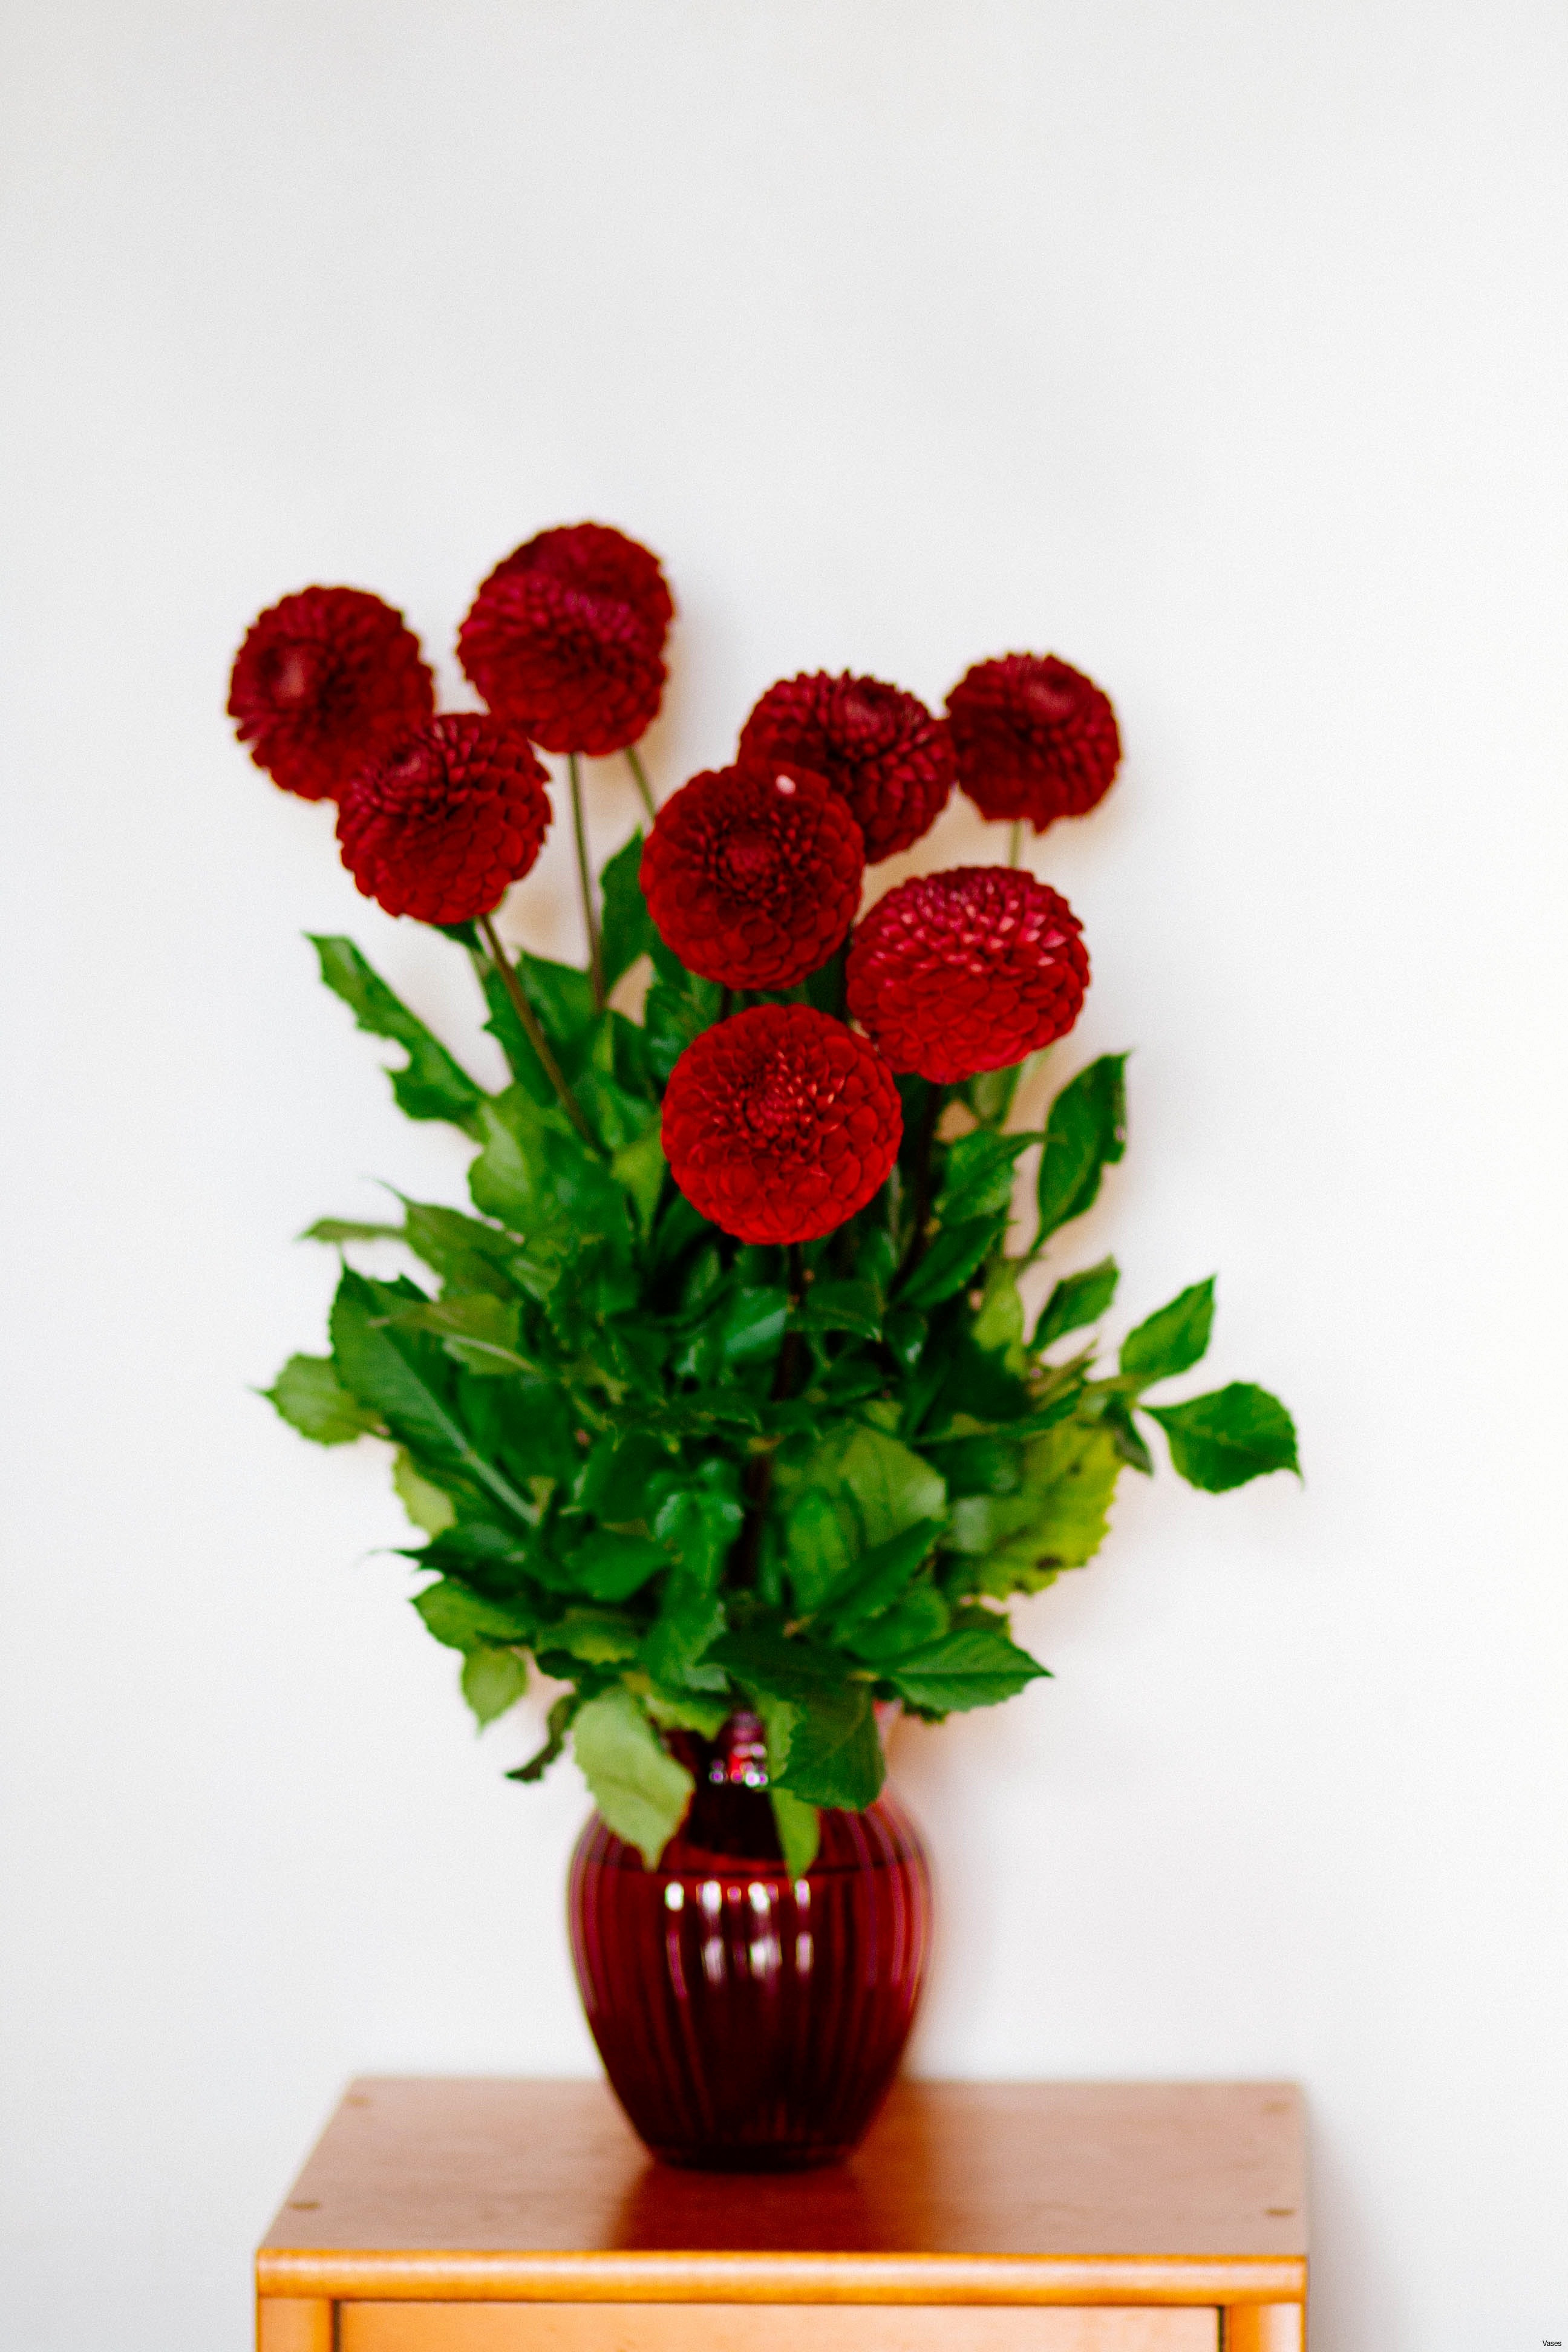 red roses with vase of 13 best of red roses in a vase wallpapers cuva wallpaper throughout red roses in a vase wallpapers fresh wallpaper flowers awesome flower vase with frog lid 6